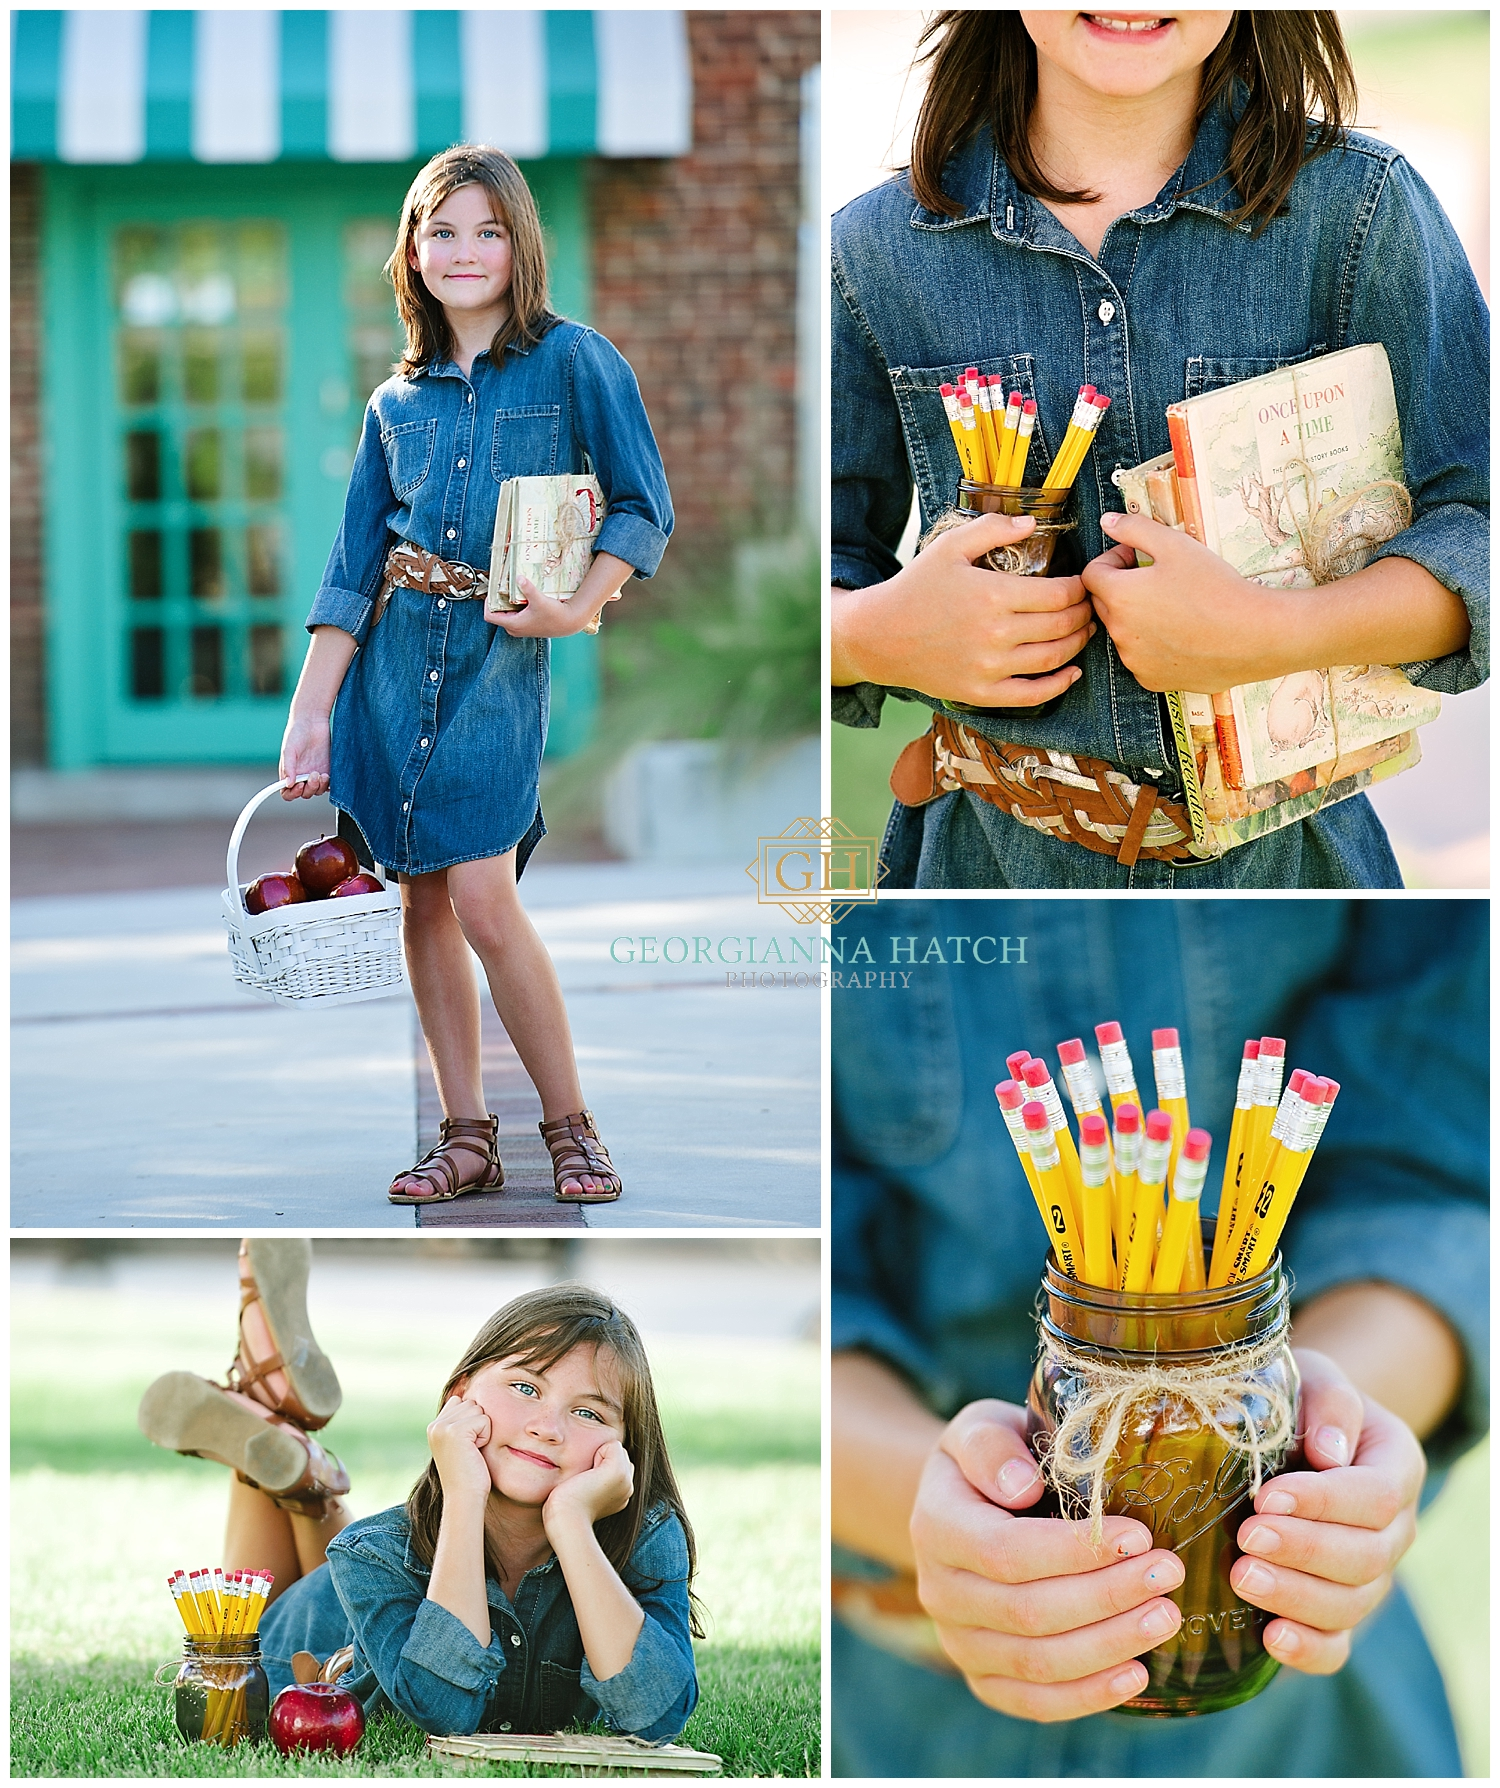 It's time for Back to School Photos! - Contact us to create a unique and fun session for the new school year!